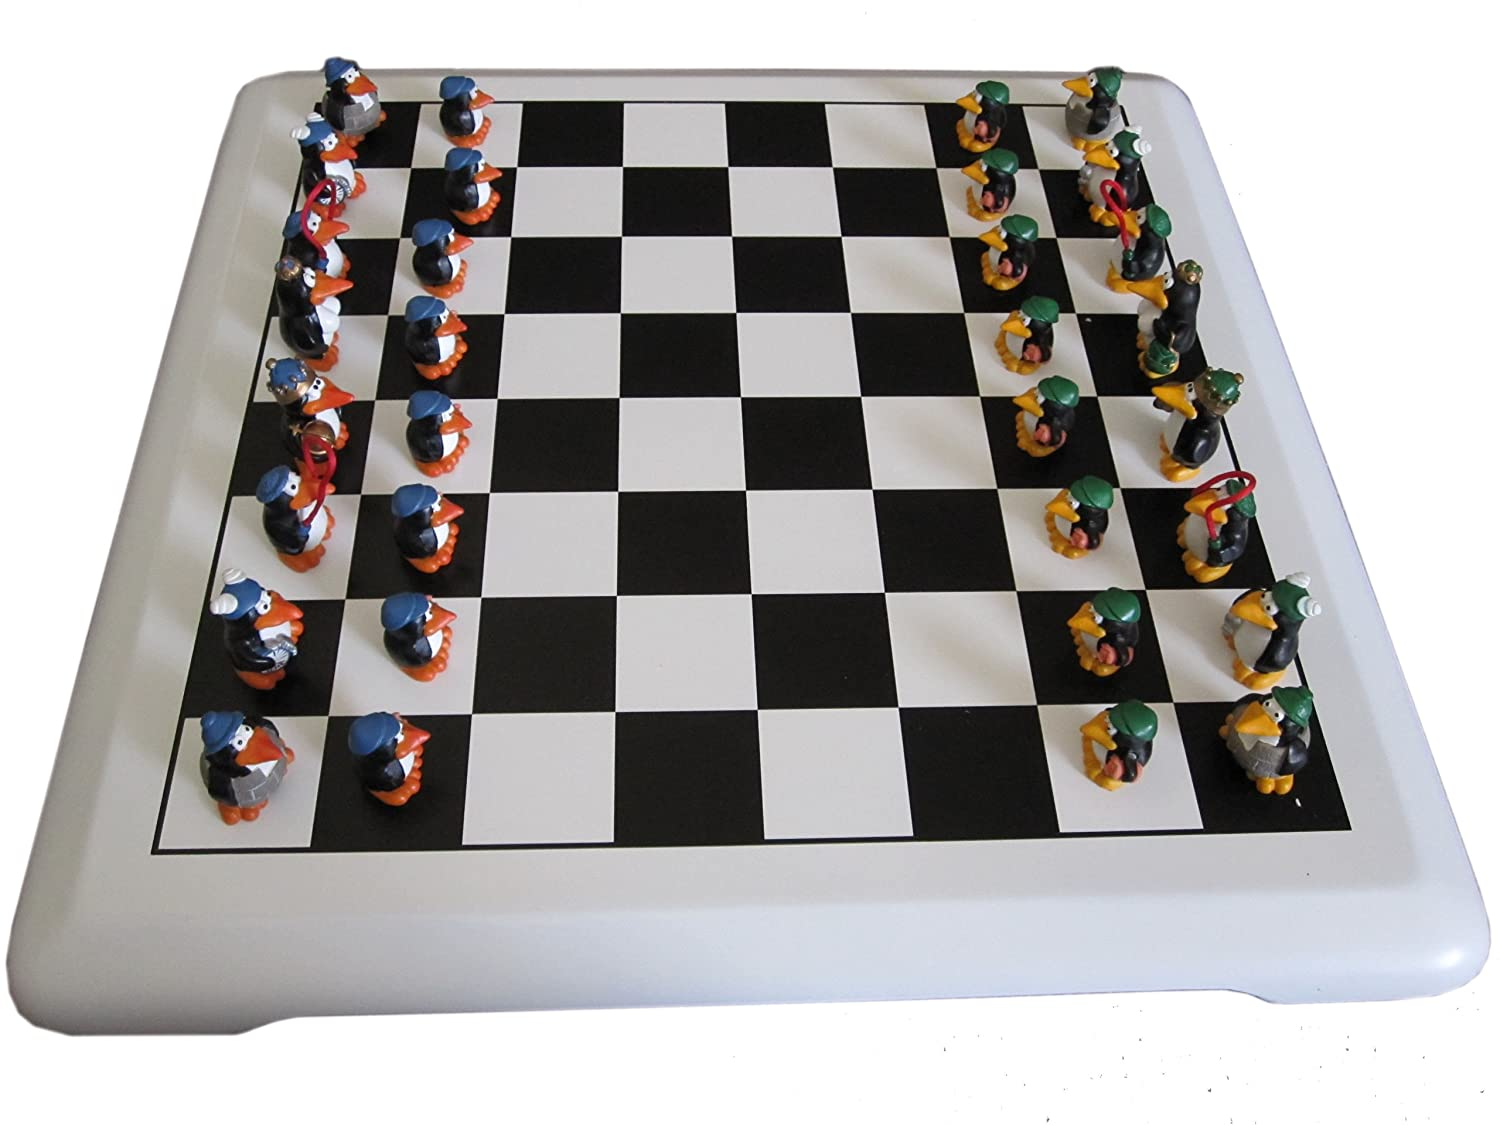 Wooden Chess Set in Black and White Penguin Theme